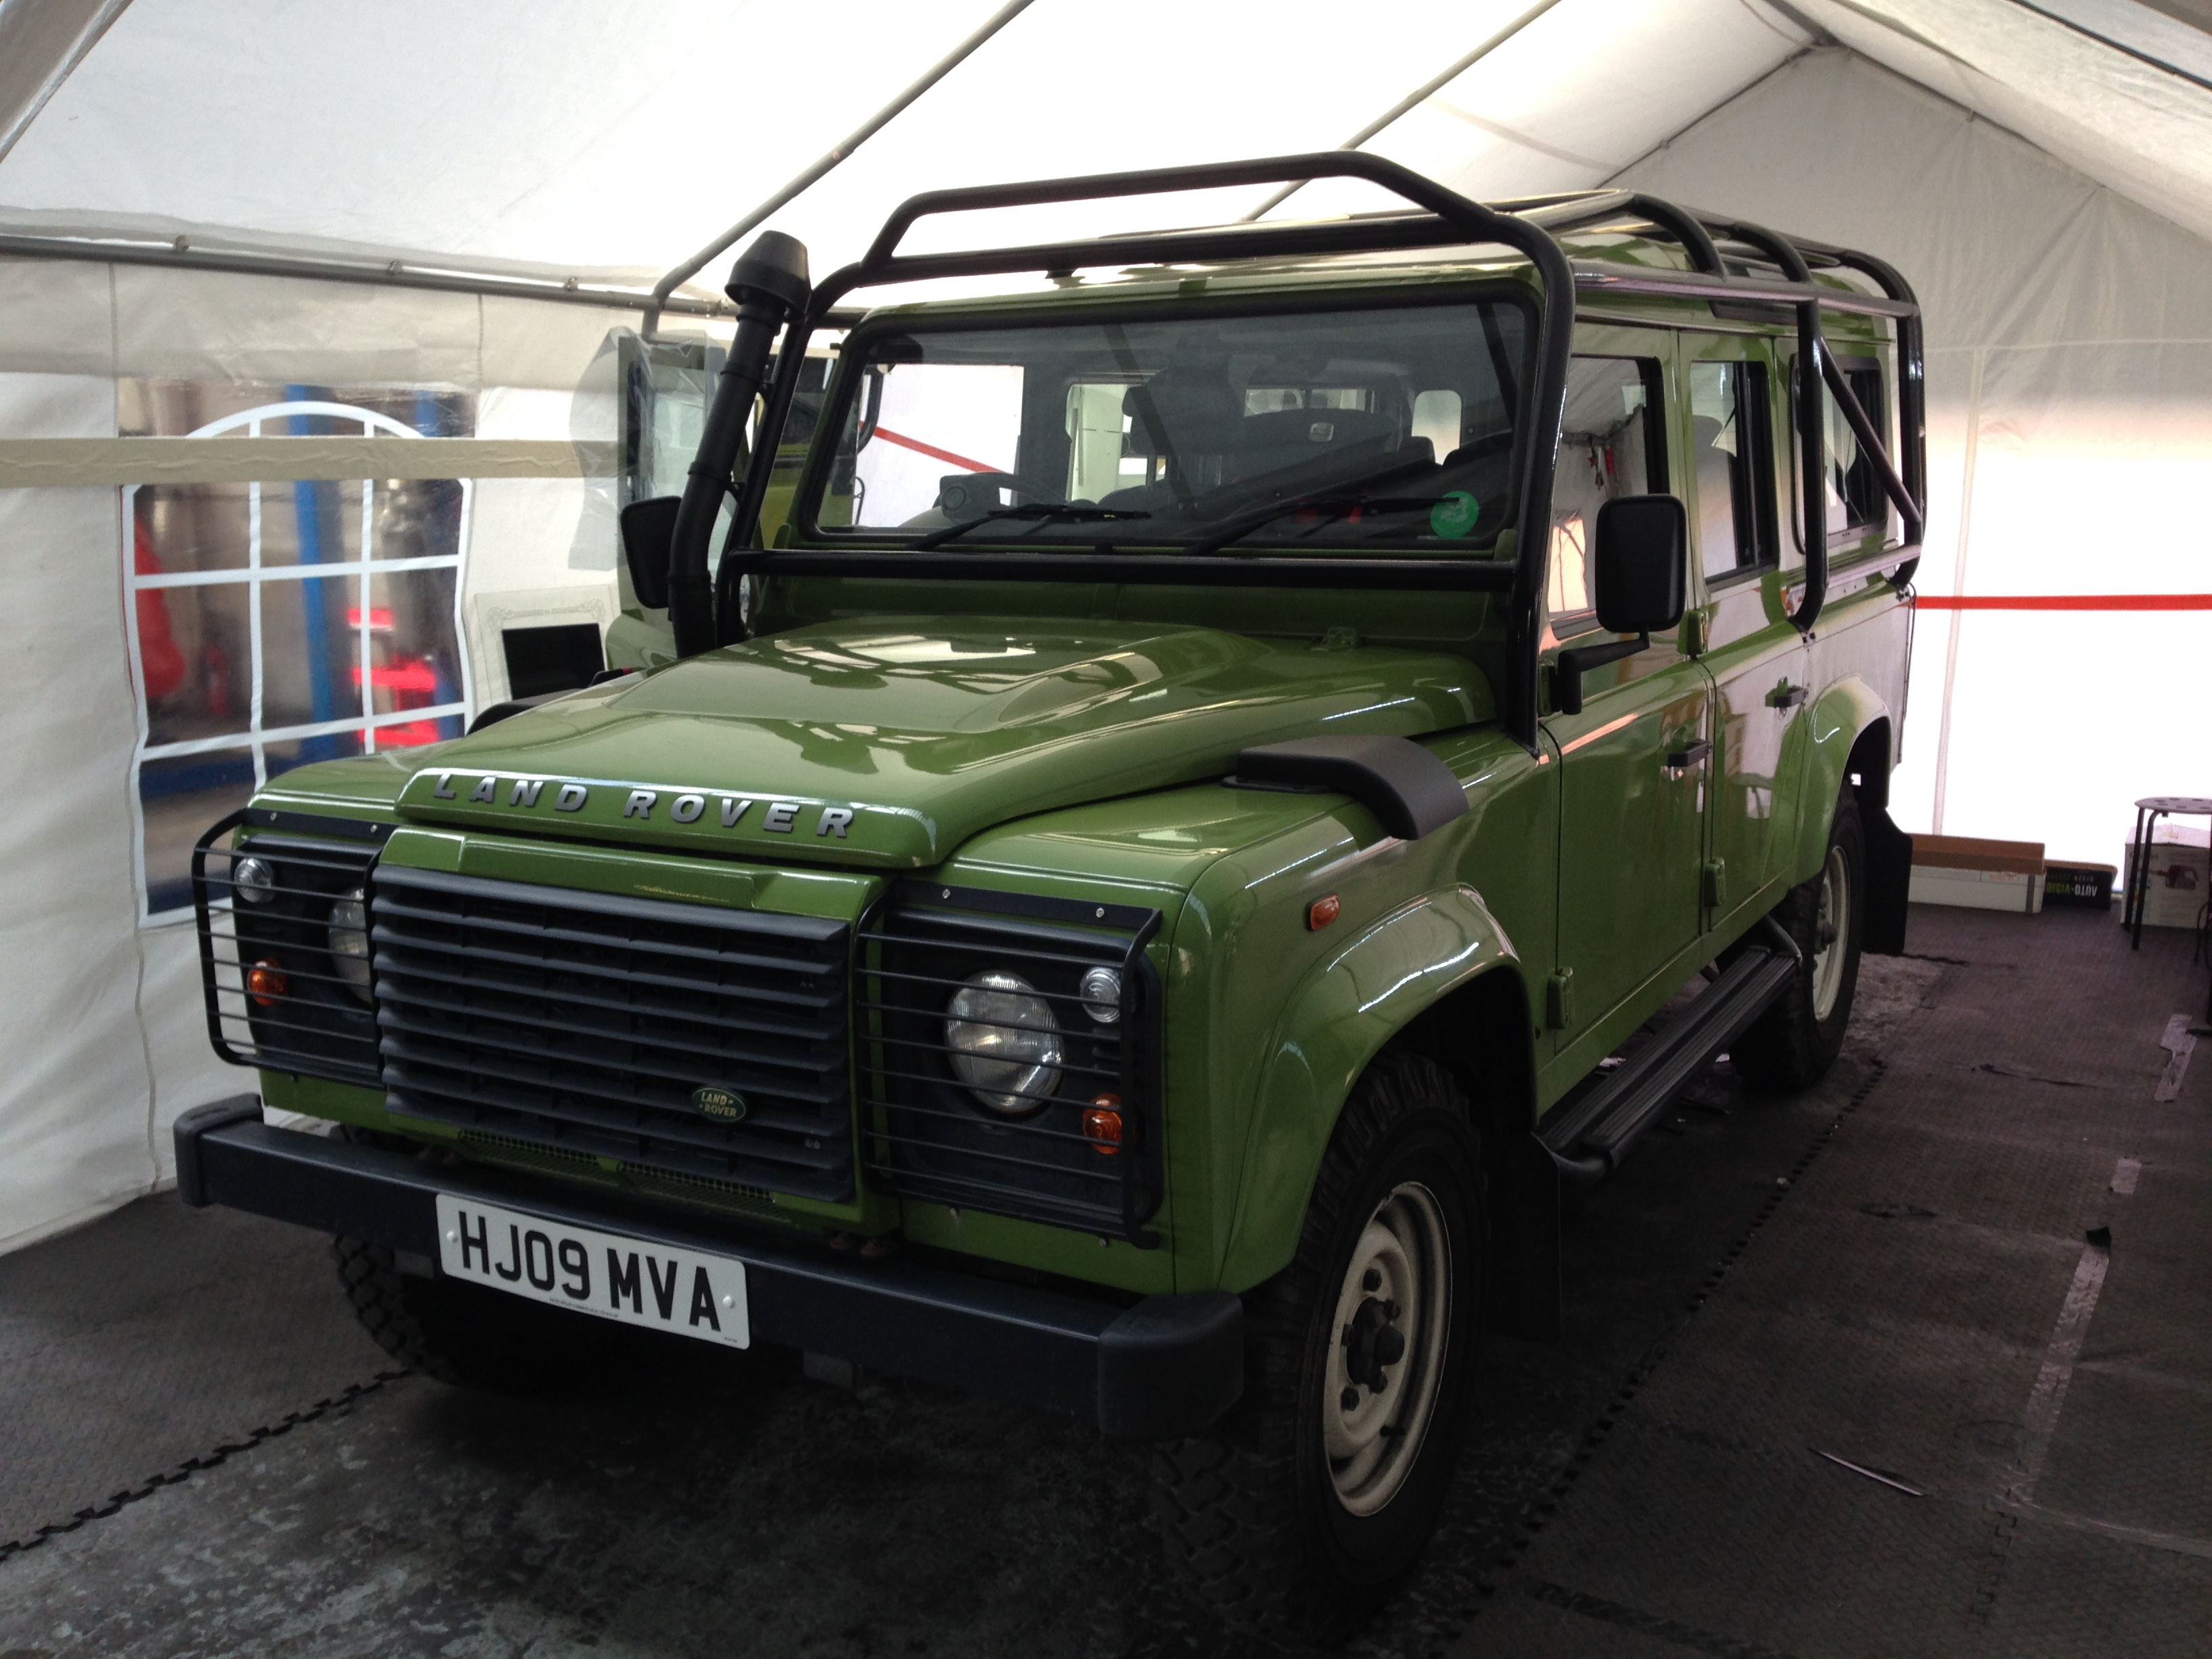 #defender #landrover #carwindowtinting #knightsbridge #london #4x4